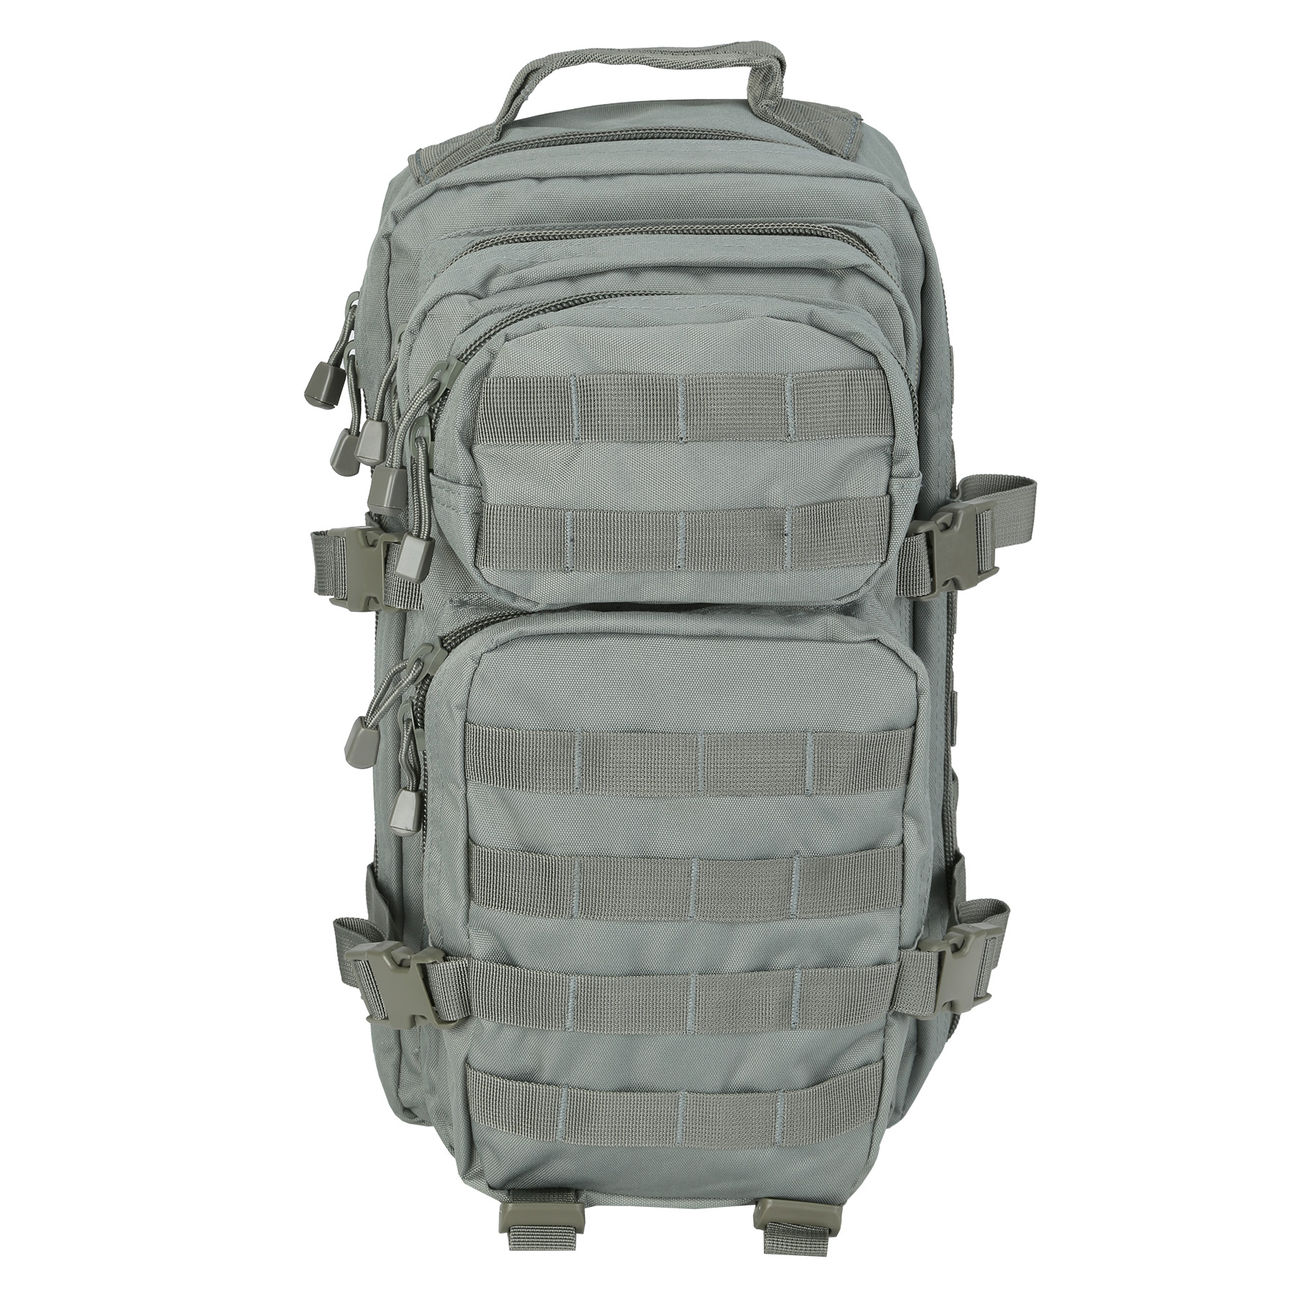 Mil-Tec Rucksack US Assault Pack I 20 Liter foliage 6